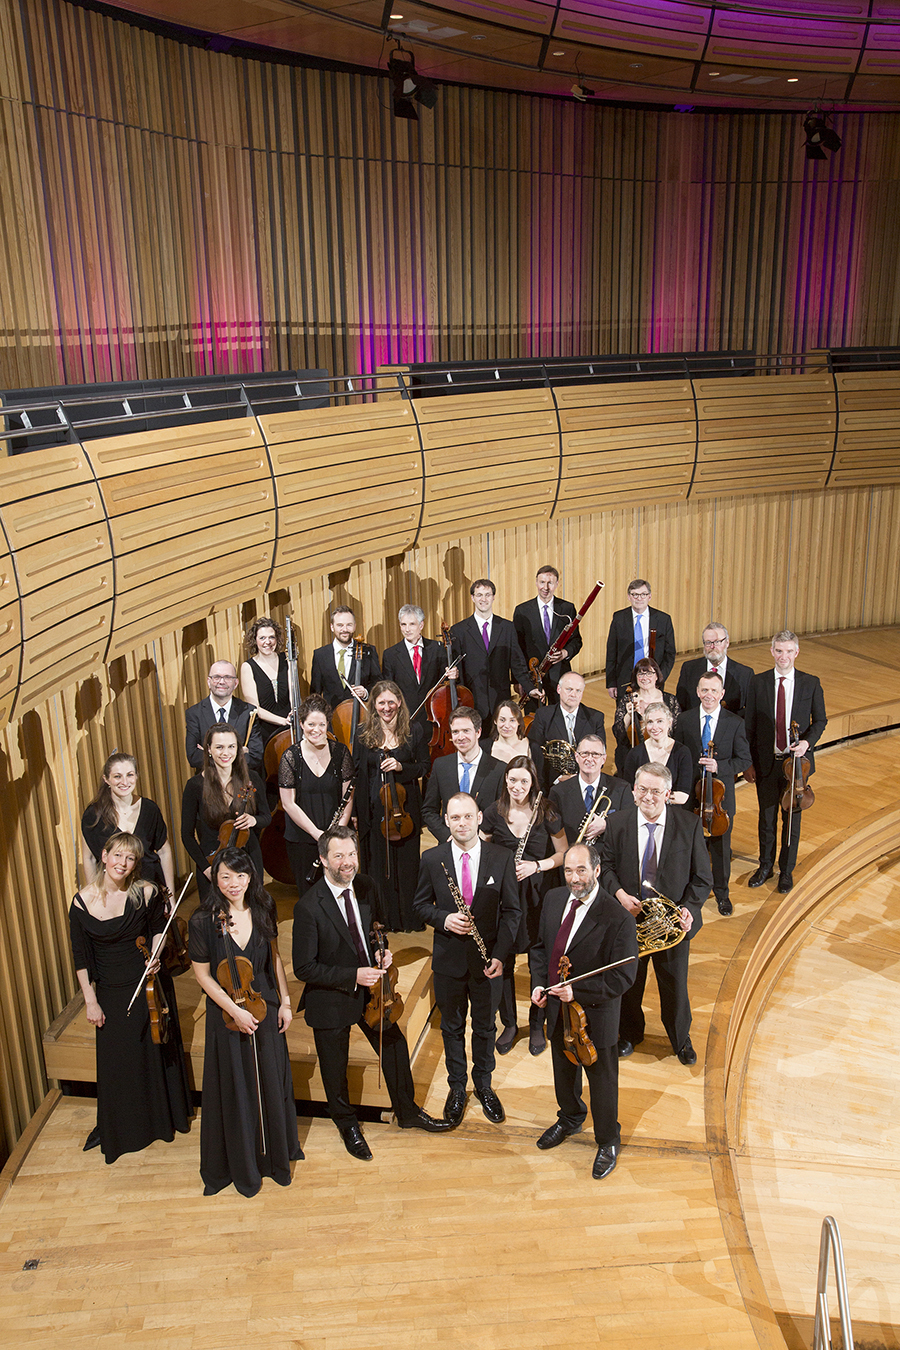 Members of the Royal Northern Sinfonia. Photo: MARK SAVAGE